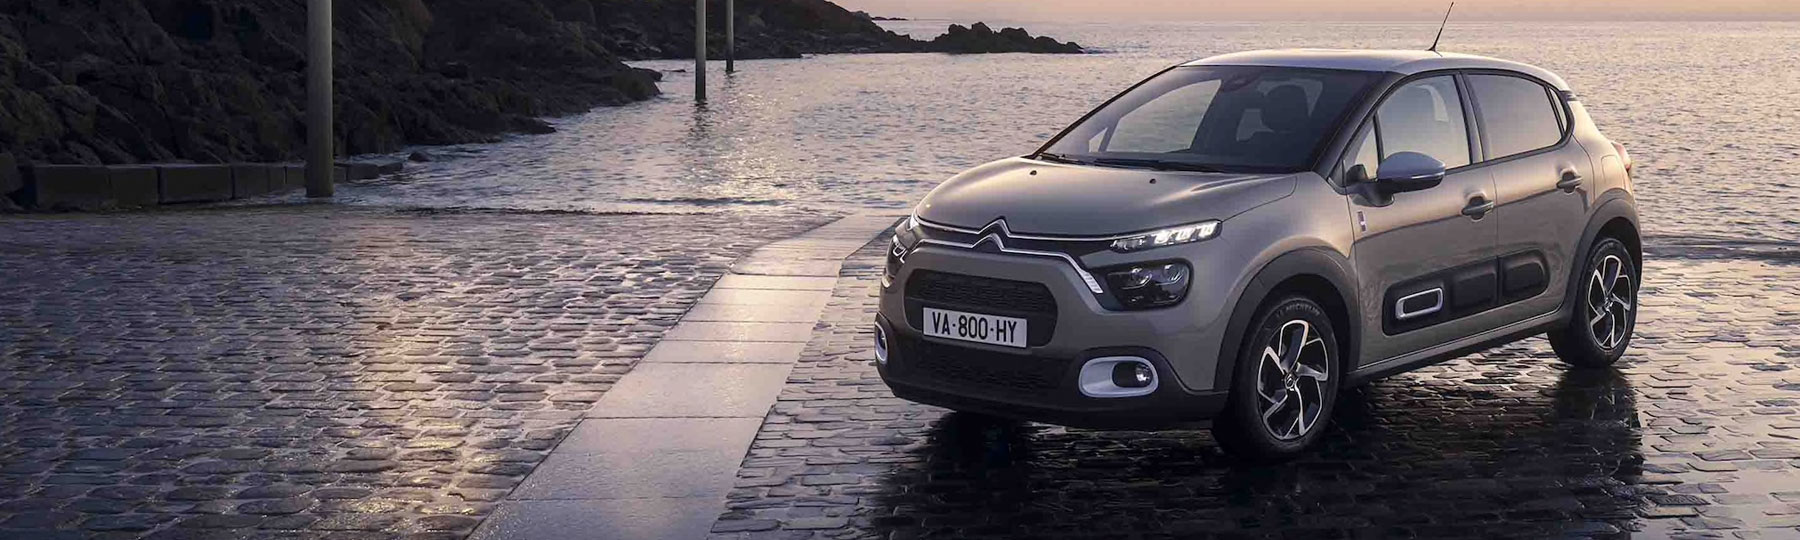 new citroen c3 business offers citroen business leasing deals pentagon citroen. Black Bedroom Furniture Sets. Home Design Ideas